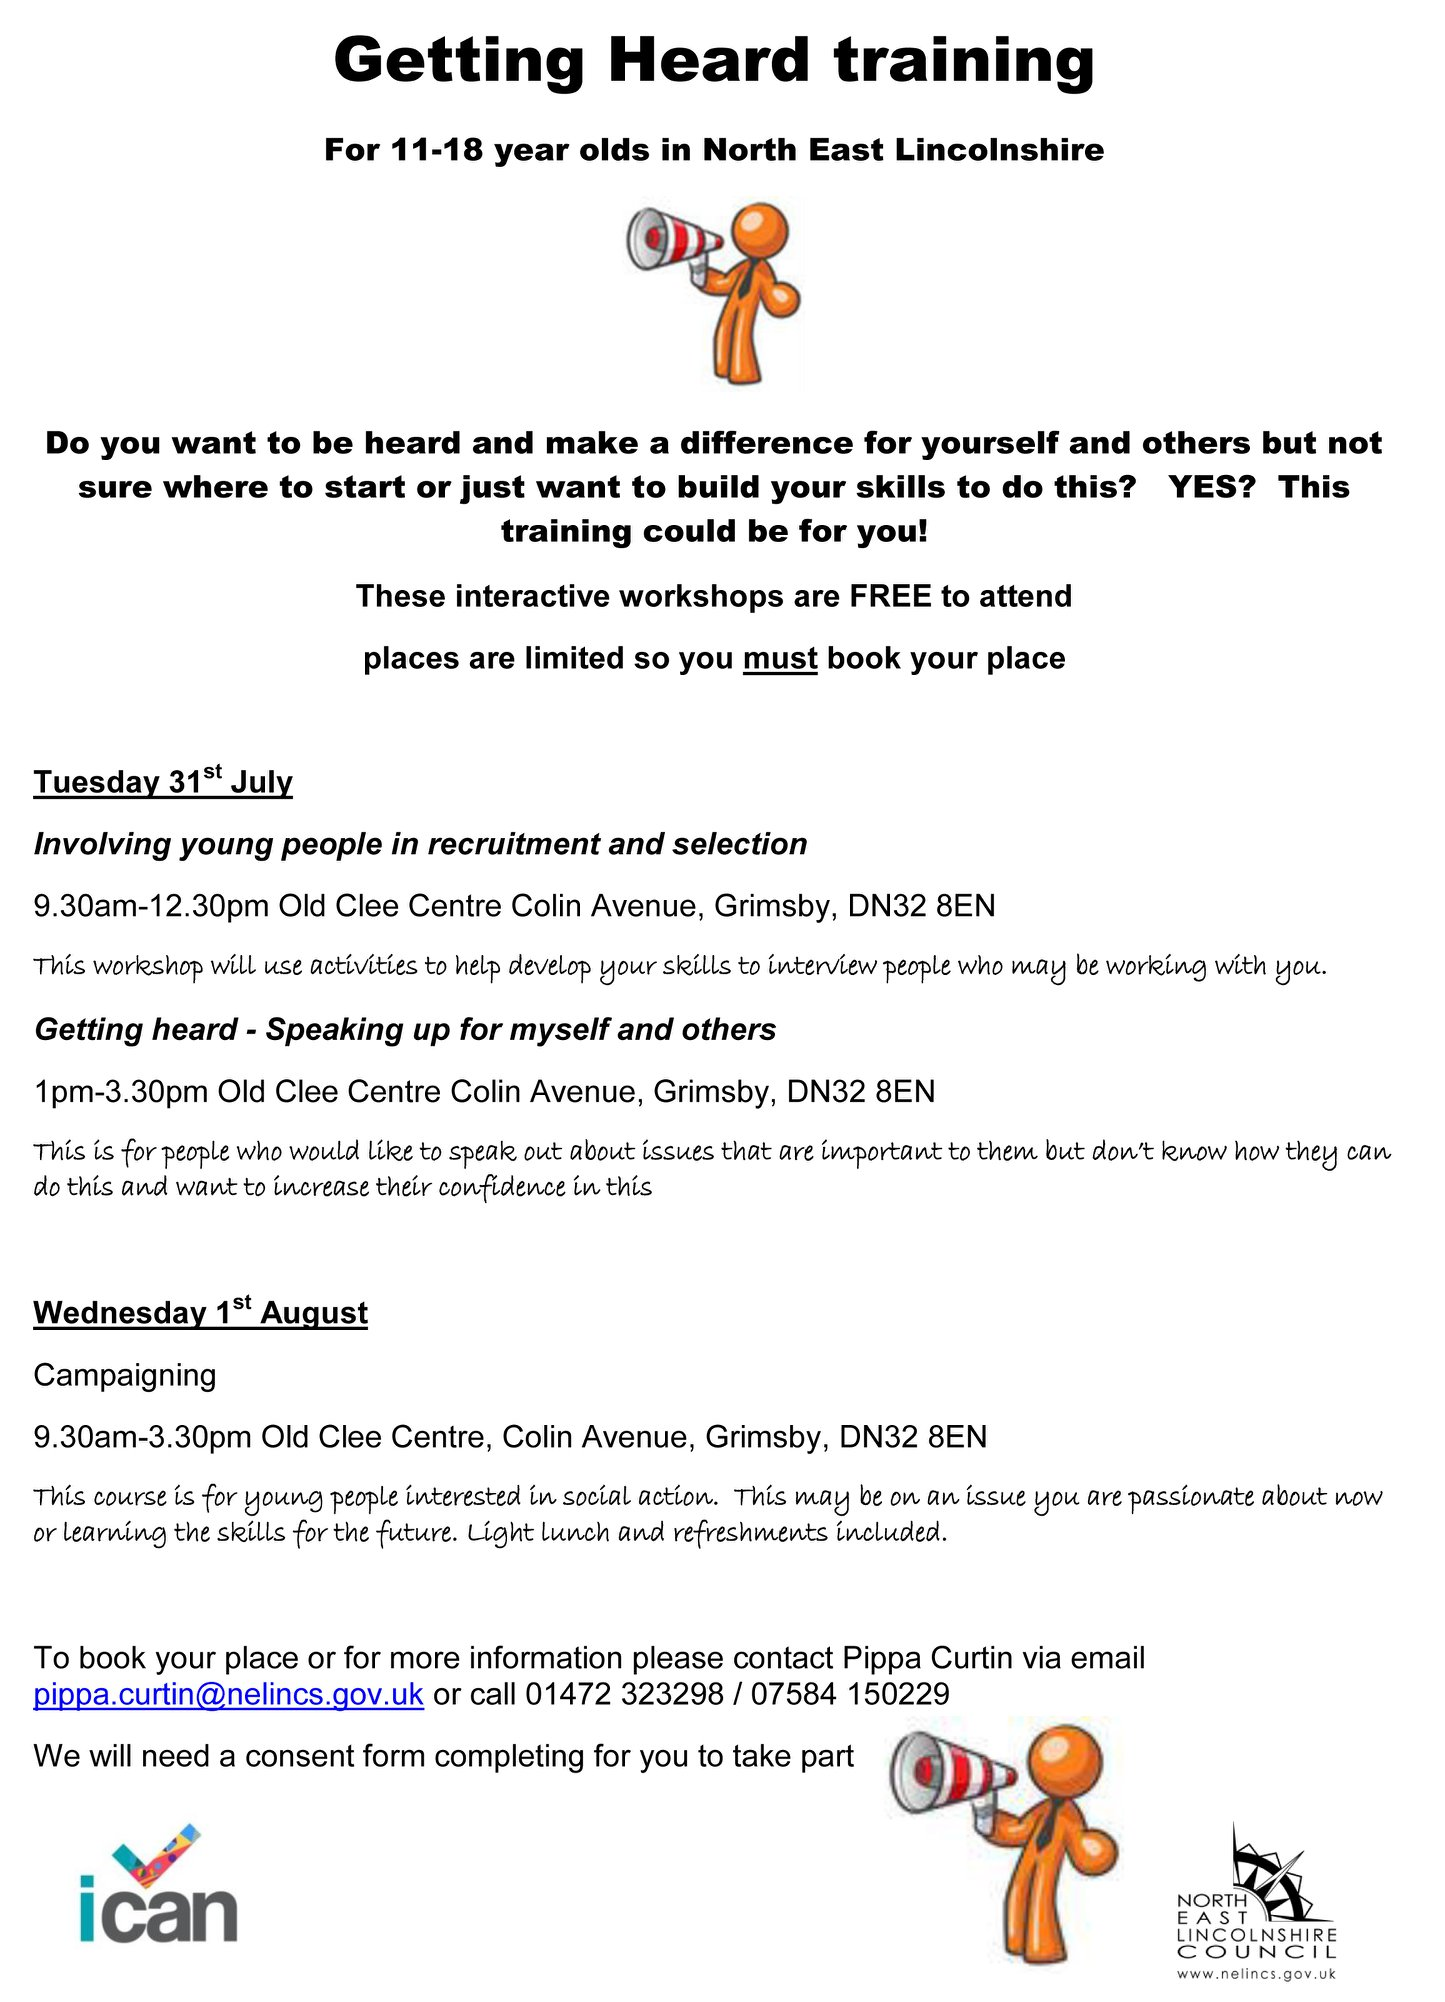 """Getting Heard"" training for 11-18 year olds @ Old Clee Centre Grimsby"